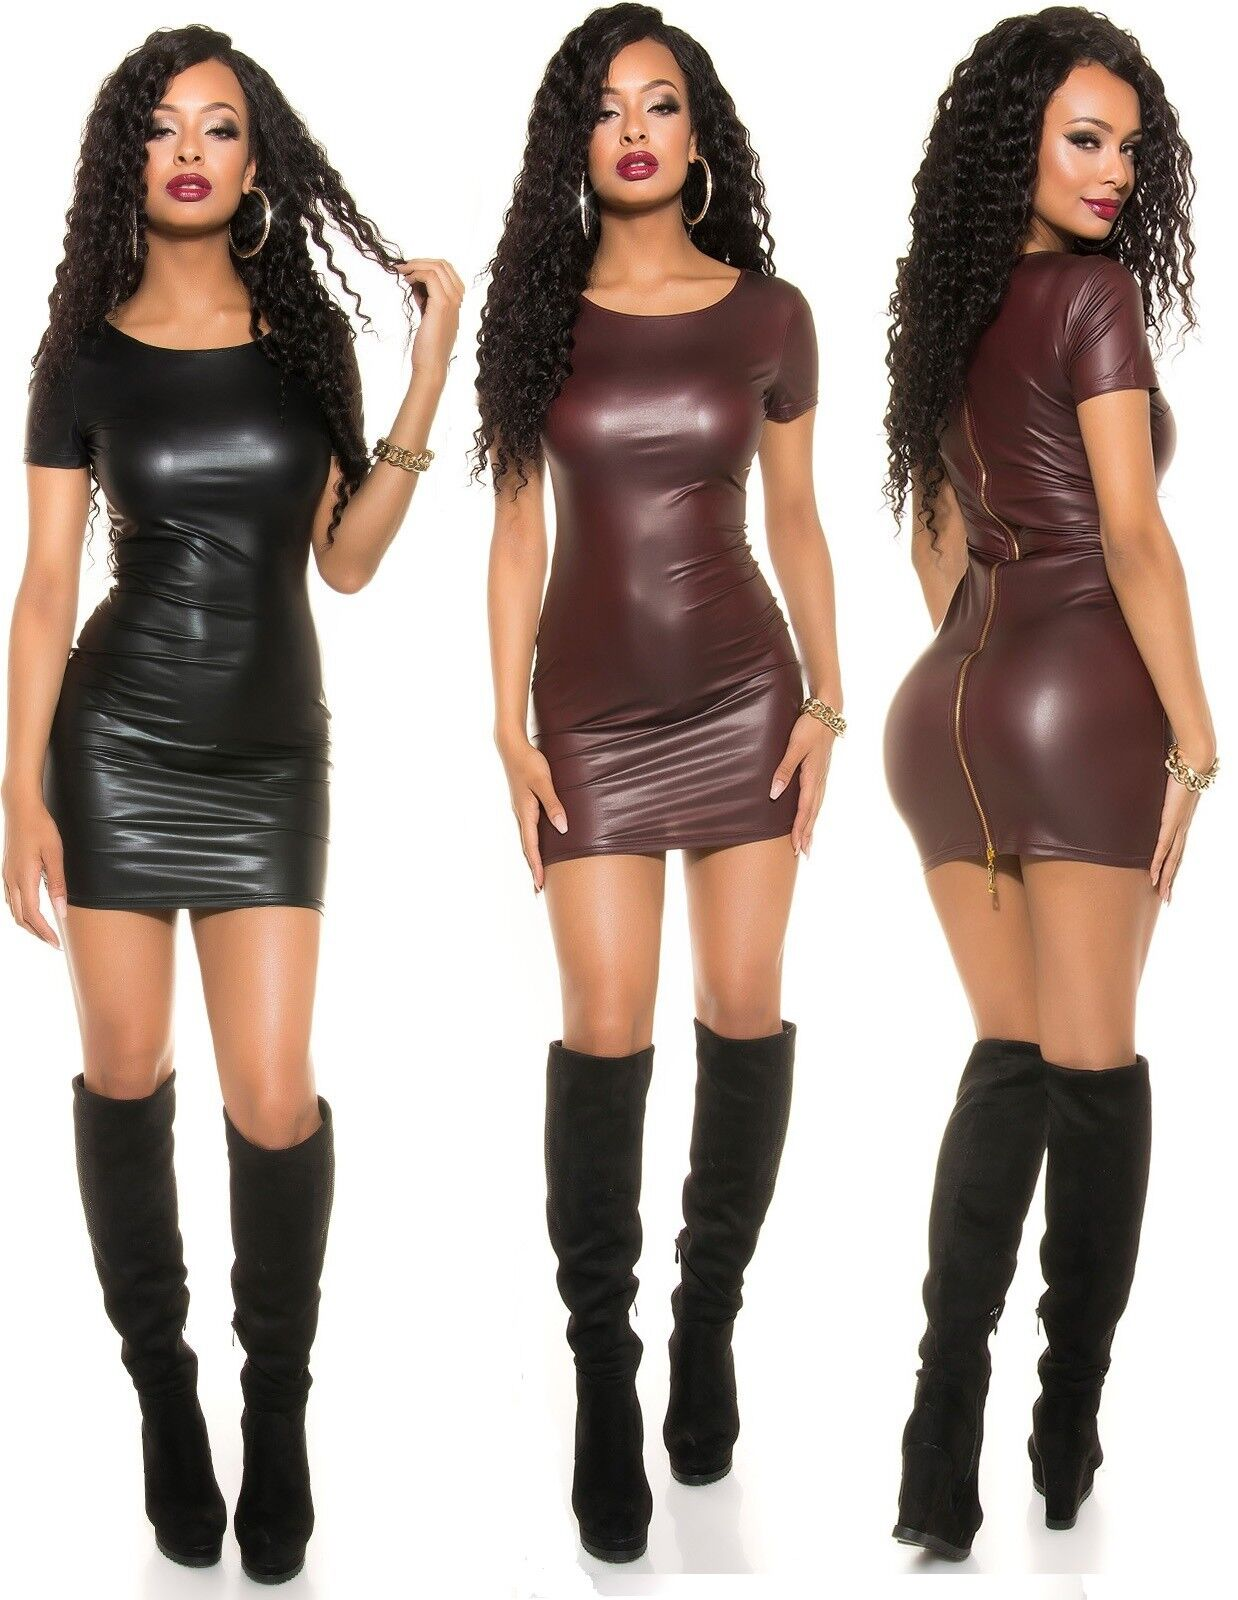 Koucla Kleid Wetlook Lederlook Minikleid mit 2Way Zip